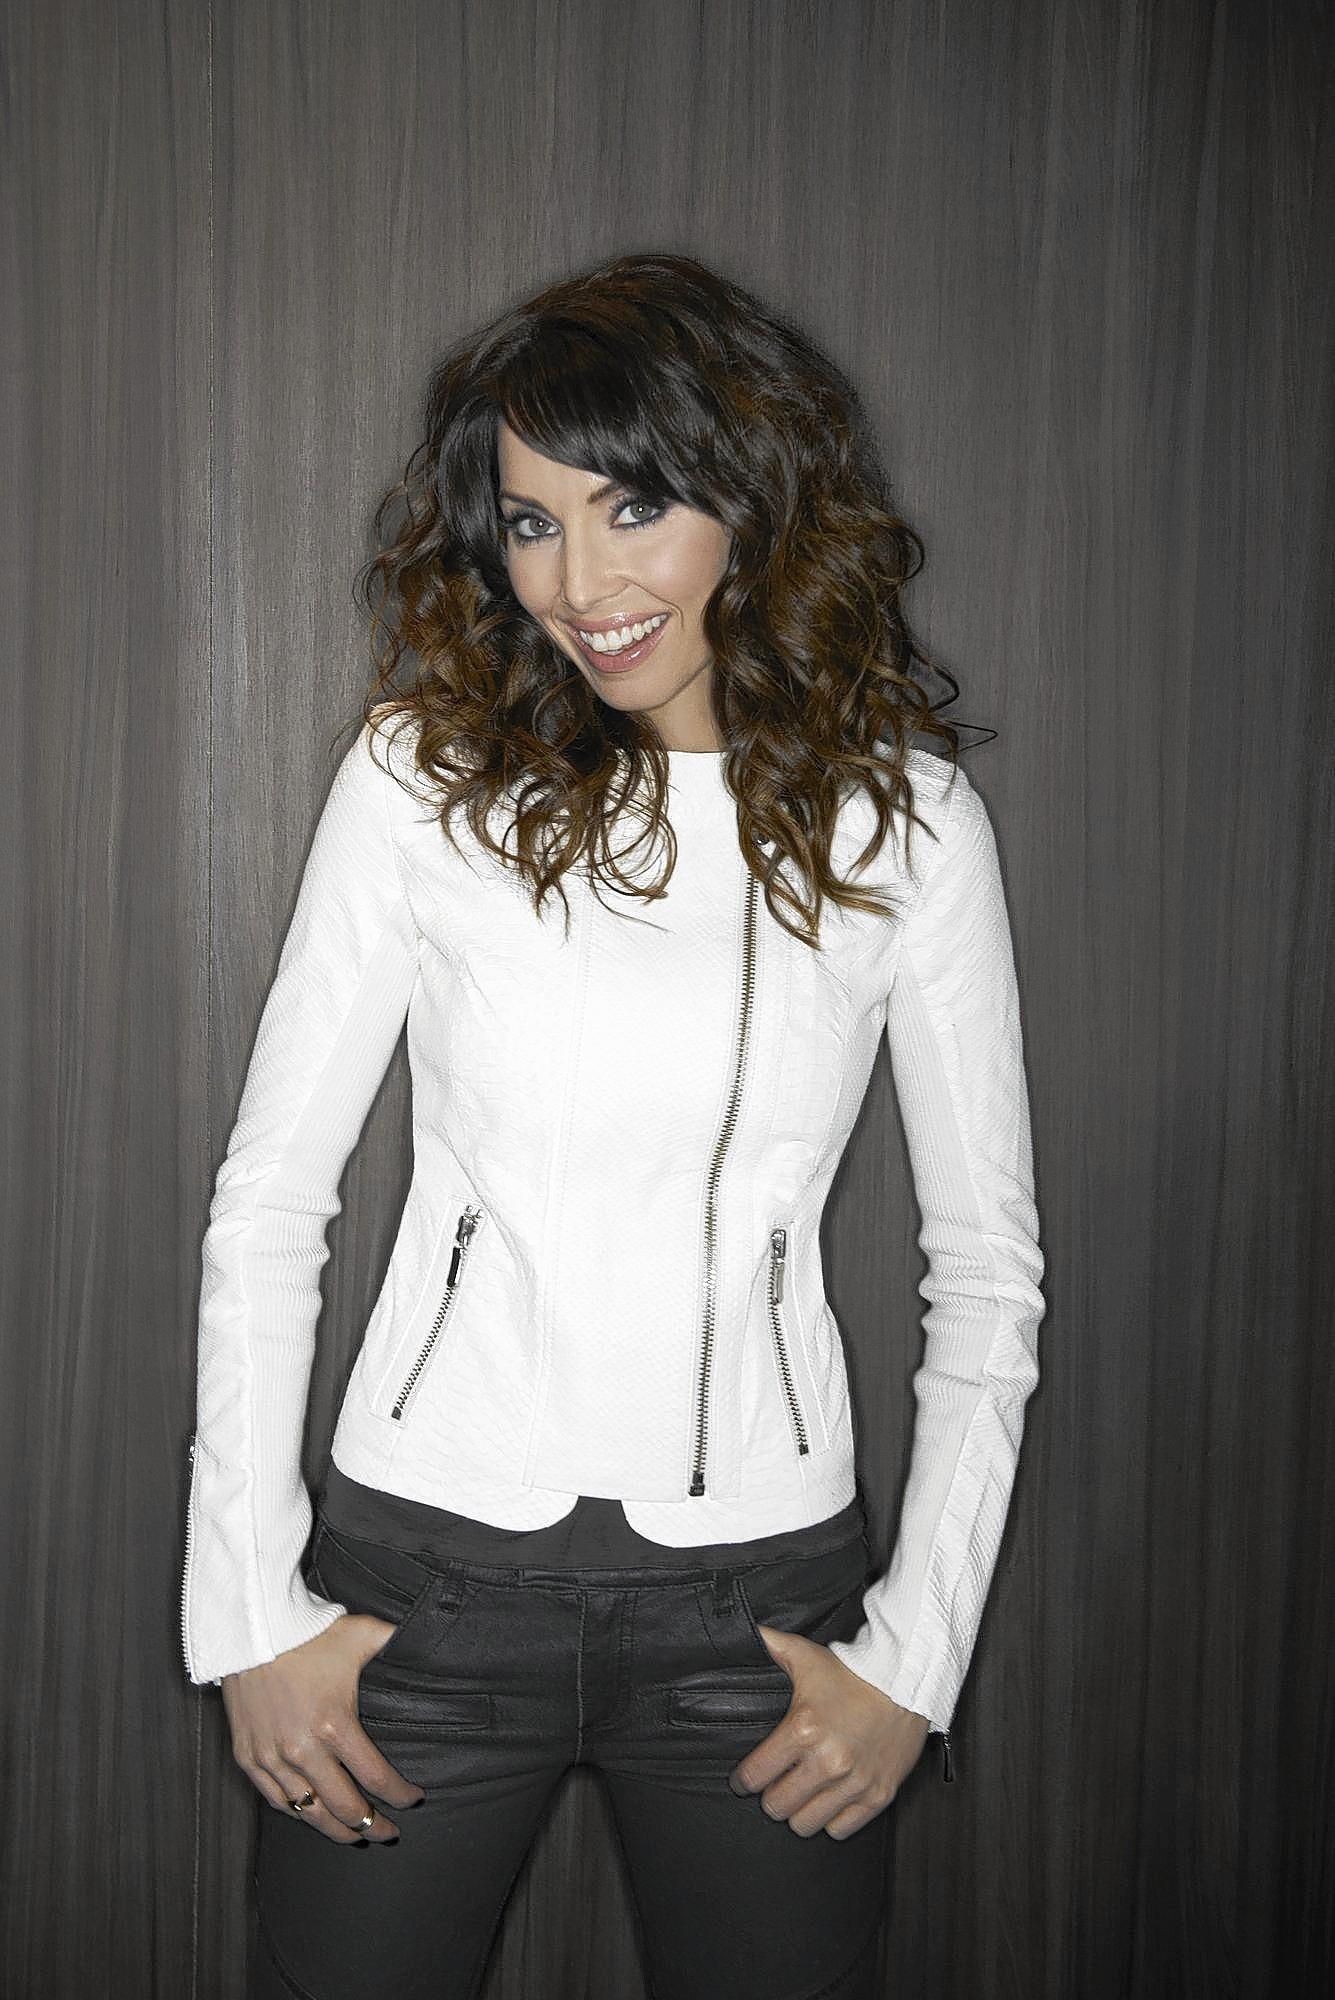 Whitney Cummings will film her Comedy Central special at the Irvine Barclay Theatre on Saturday.